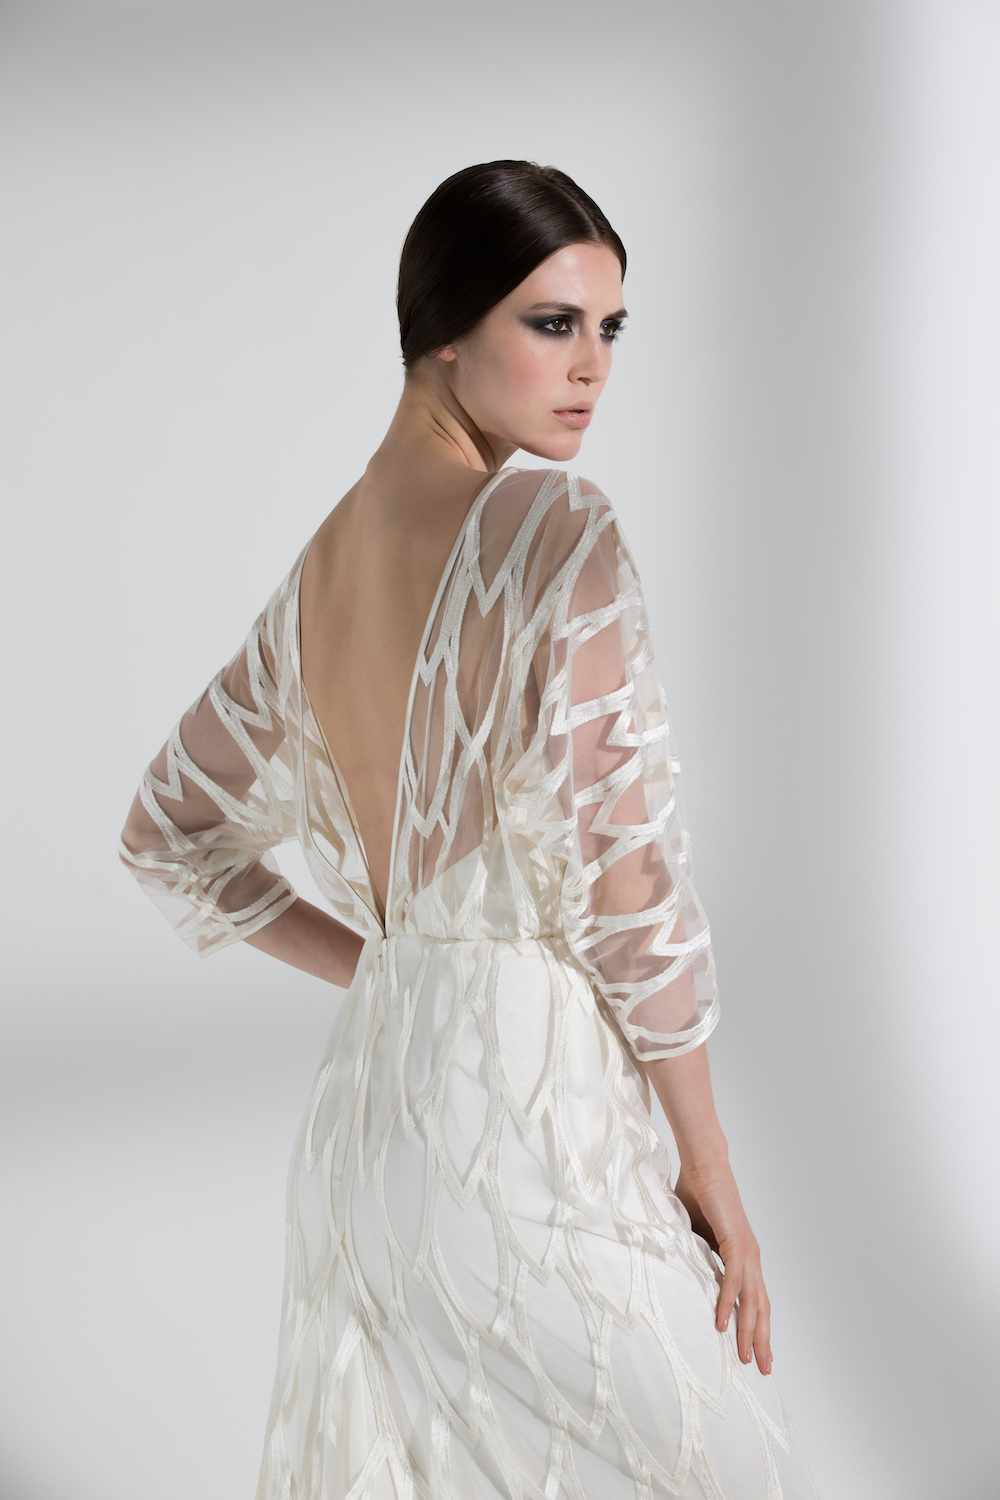 The Willow wedding dress by Halfpenny London